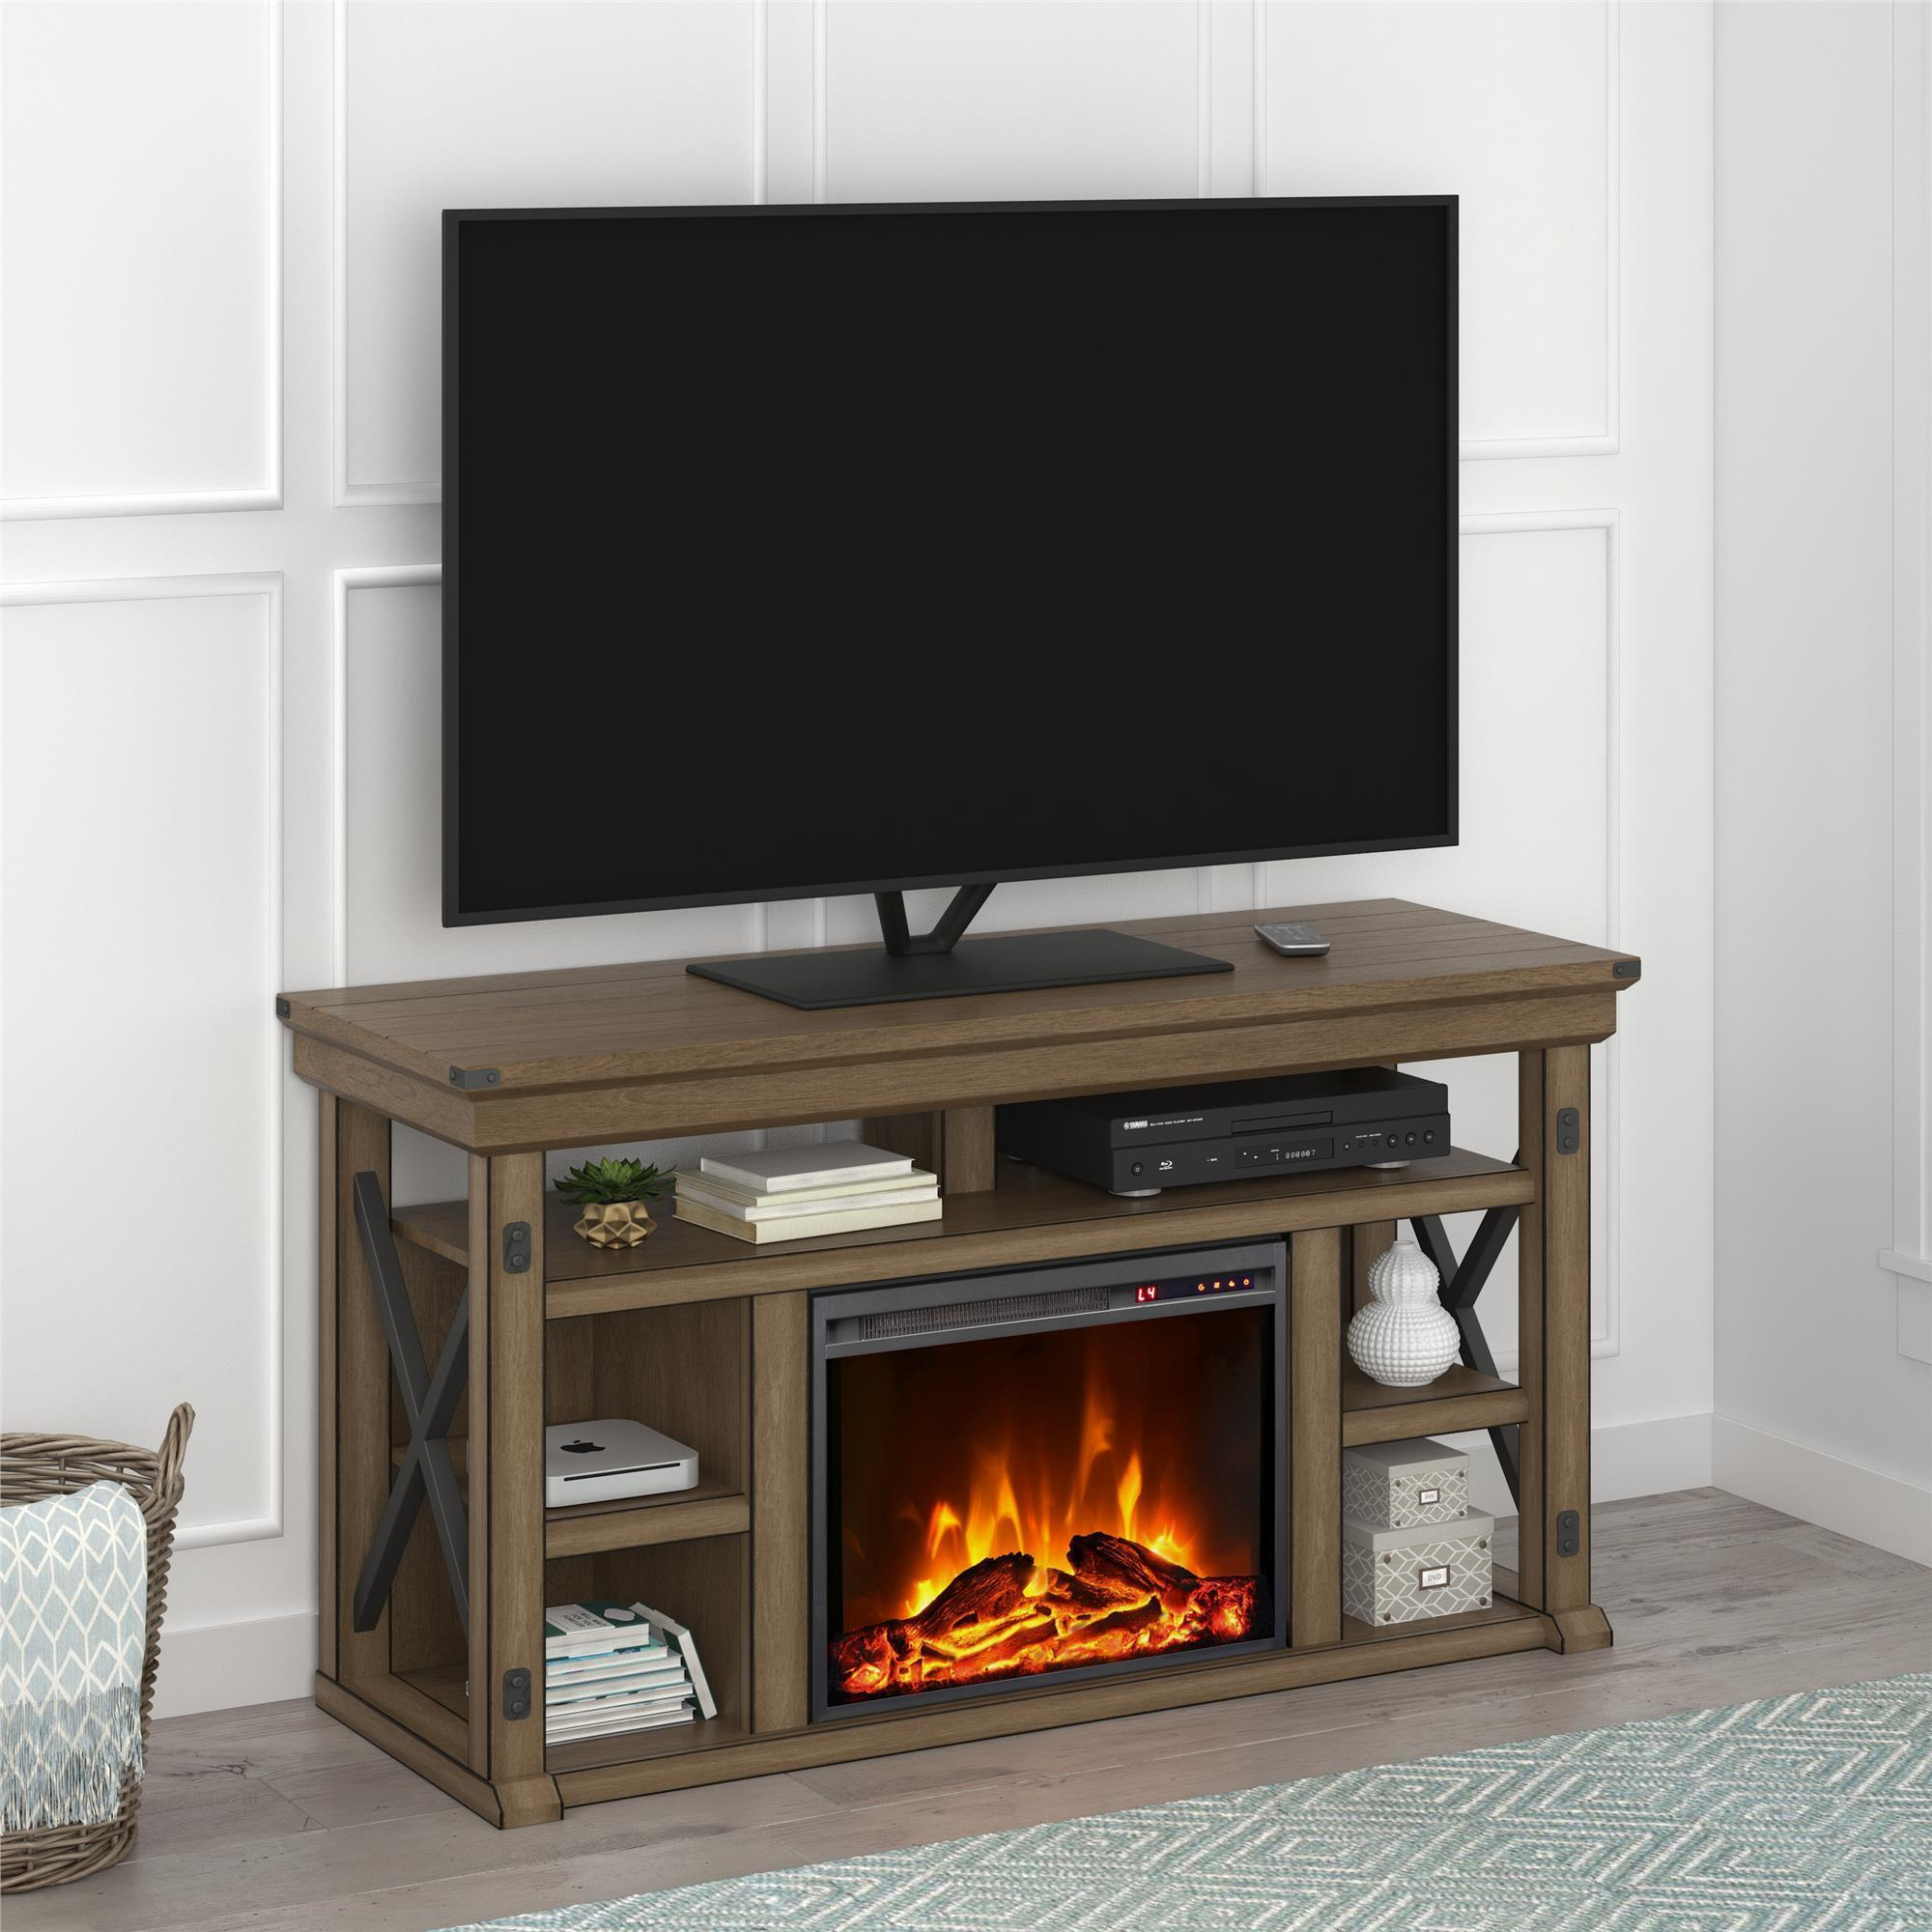 Avenue Greene Woodgate Fireplace TV Stand for TVs up to 6...